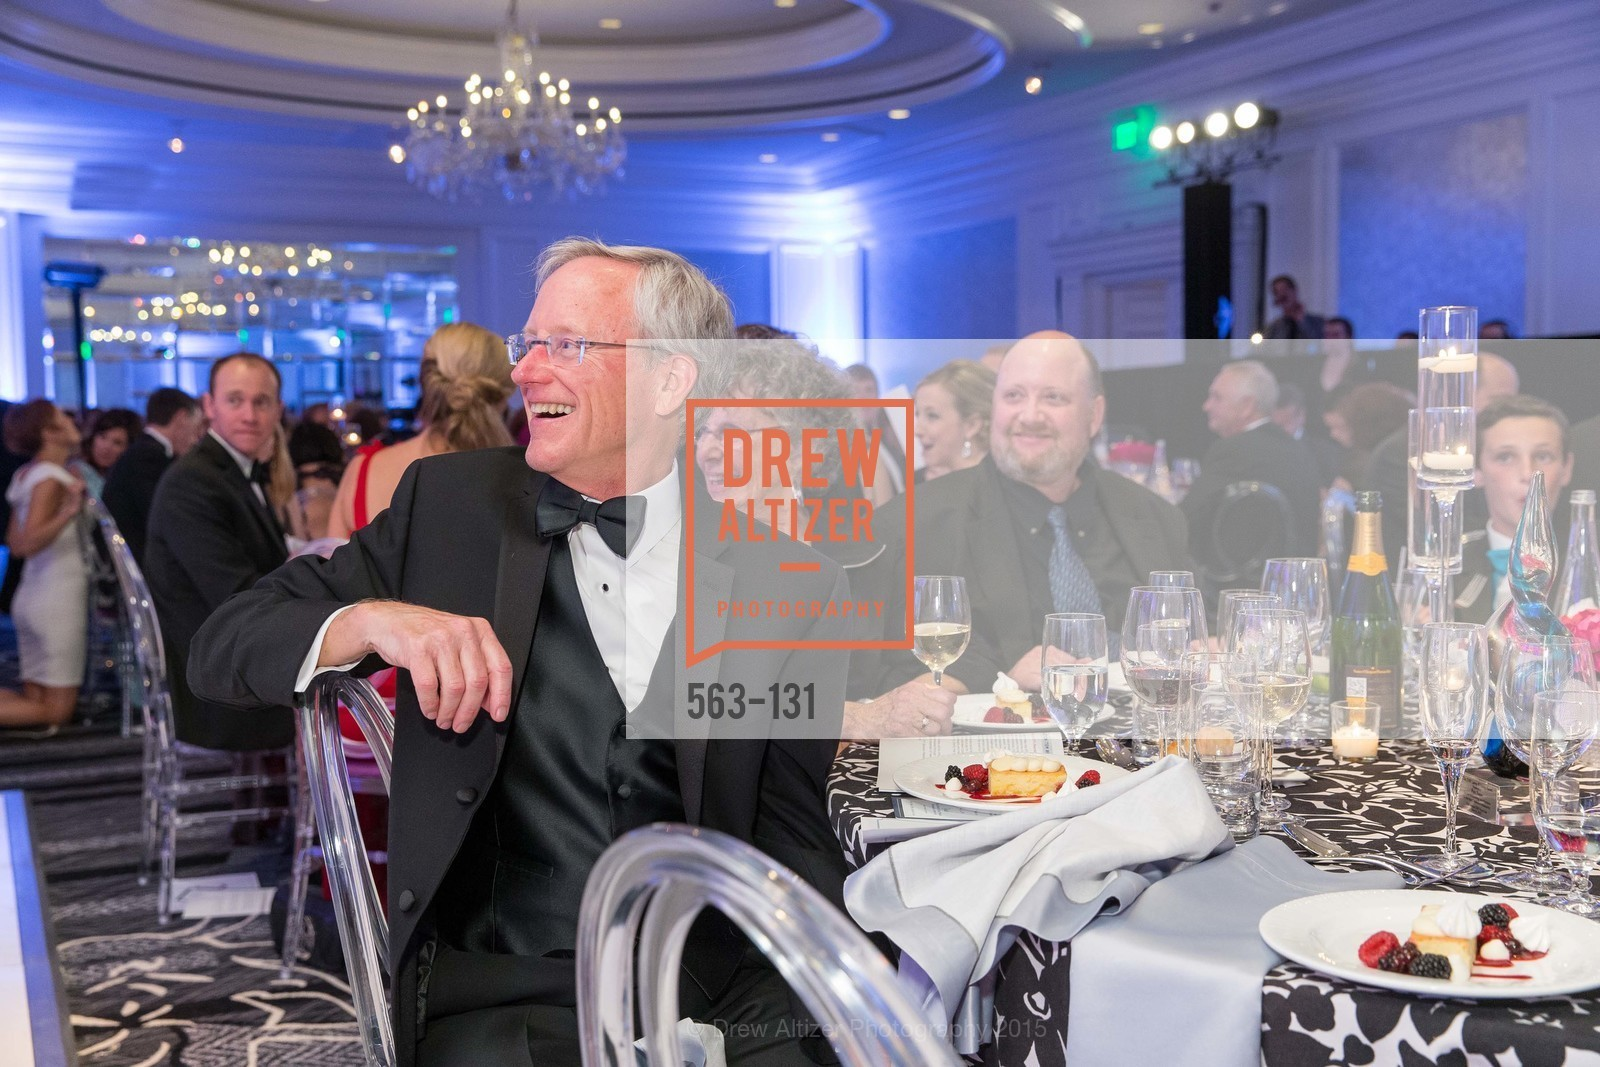 Dayton Coles, JUVENILE DIABETES RESEARCH FOUNDATION  Hope Gala, The Ritz-Carlton, May 29th, 2015,Drew Altizer, Drew Altizer Photography, full-service agency, private events, San Francisco photographer, photographer california